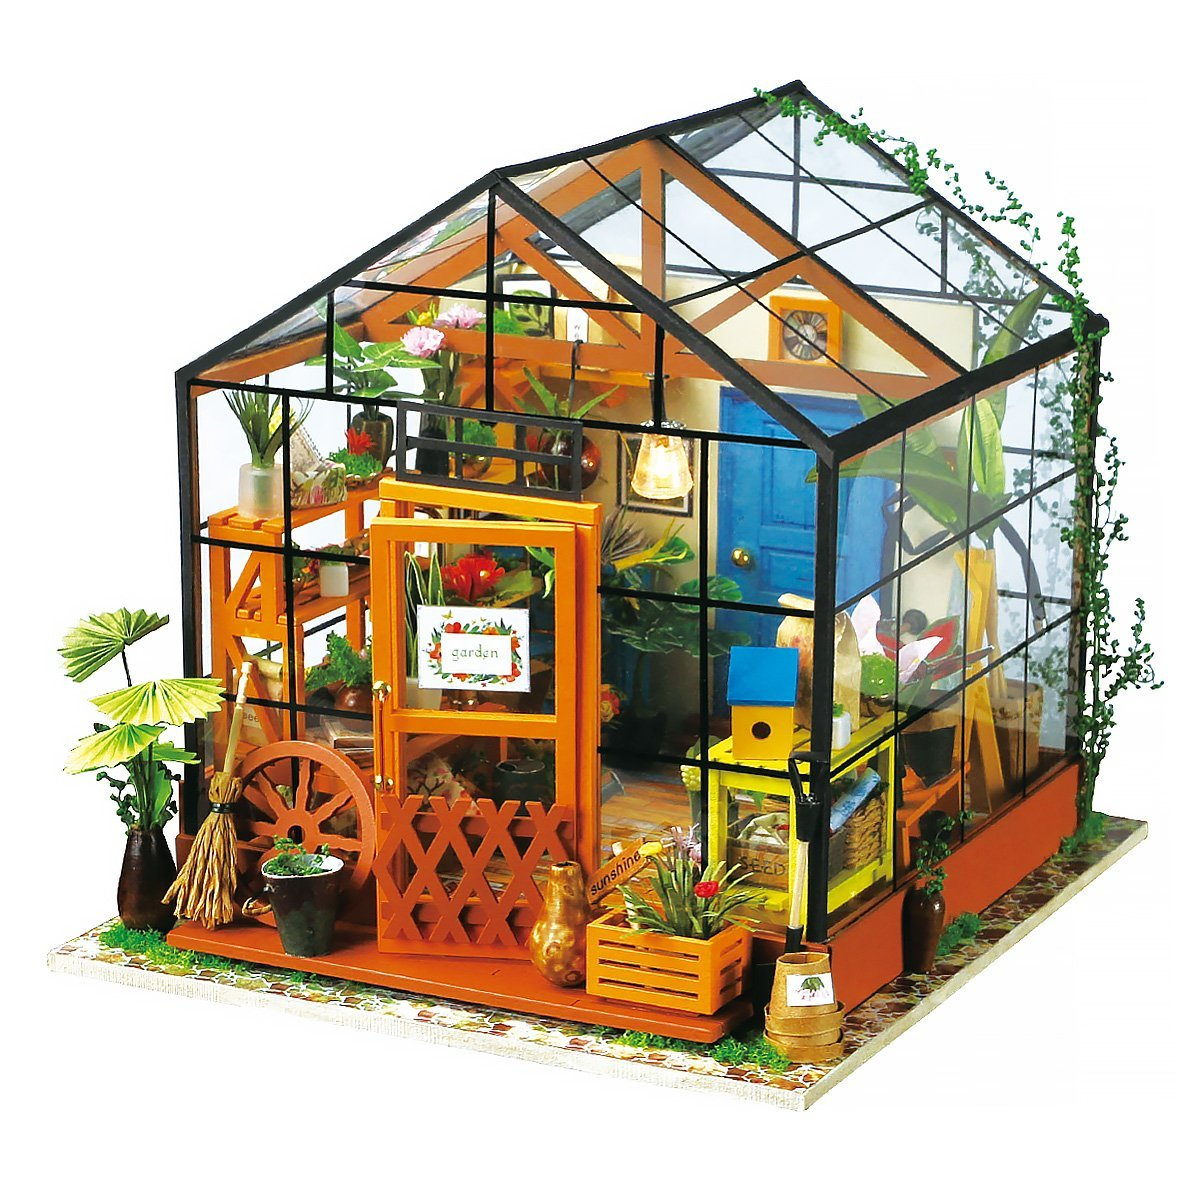 3D Dollhouse Wood Puzzle, Miniature Miller's Garden LED Cathy's Flower House by Hands Craft